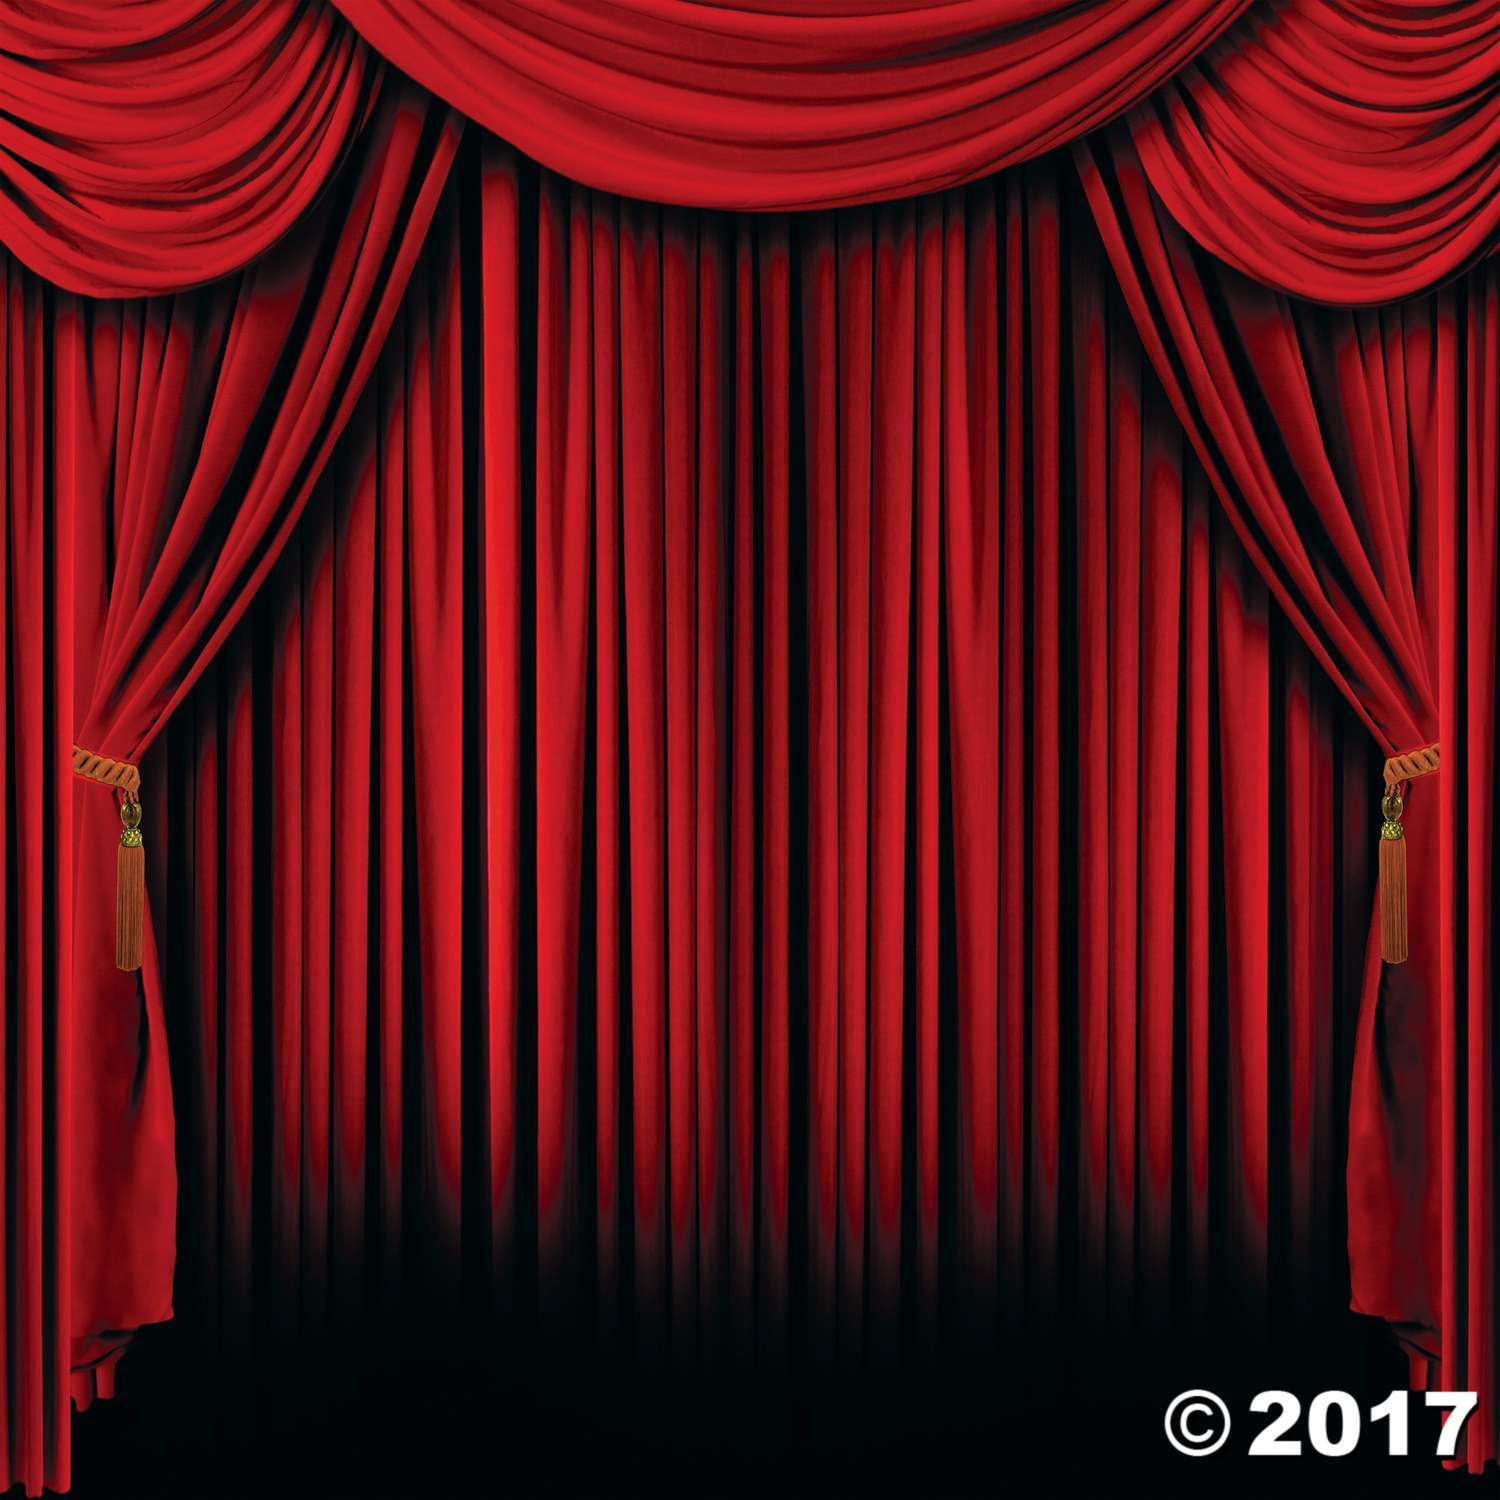 Red Curtain Backdrop | Carnival birthday, Birthdays and Party ... for Red Curtain Background Powerpoint  76uhy